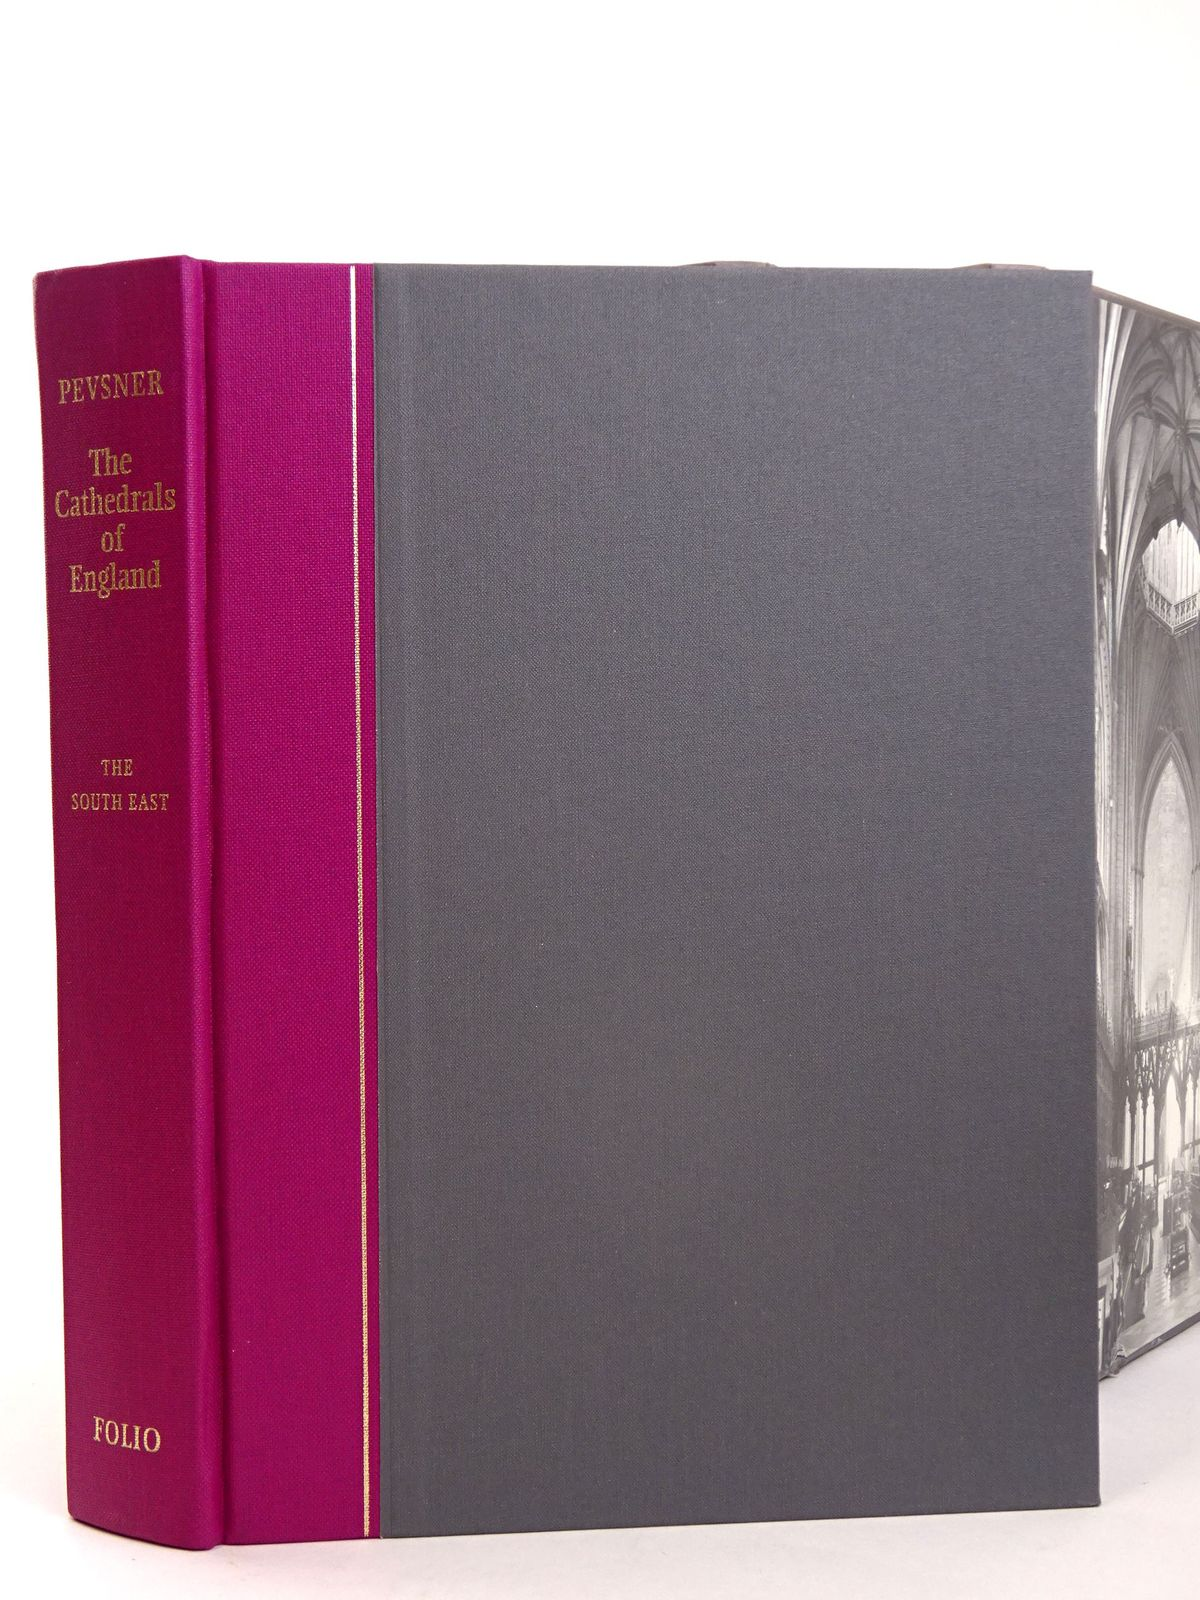 Photo of THE CATHEDRALS OF ENGLAND (3 VOLUMES) written by Pevsner, Nikolaus published by Folio Society (STOCK CODE: 1818650)  for sale by Stella & Rose's Books